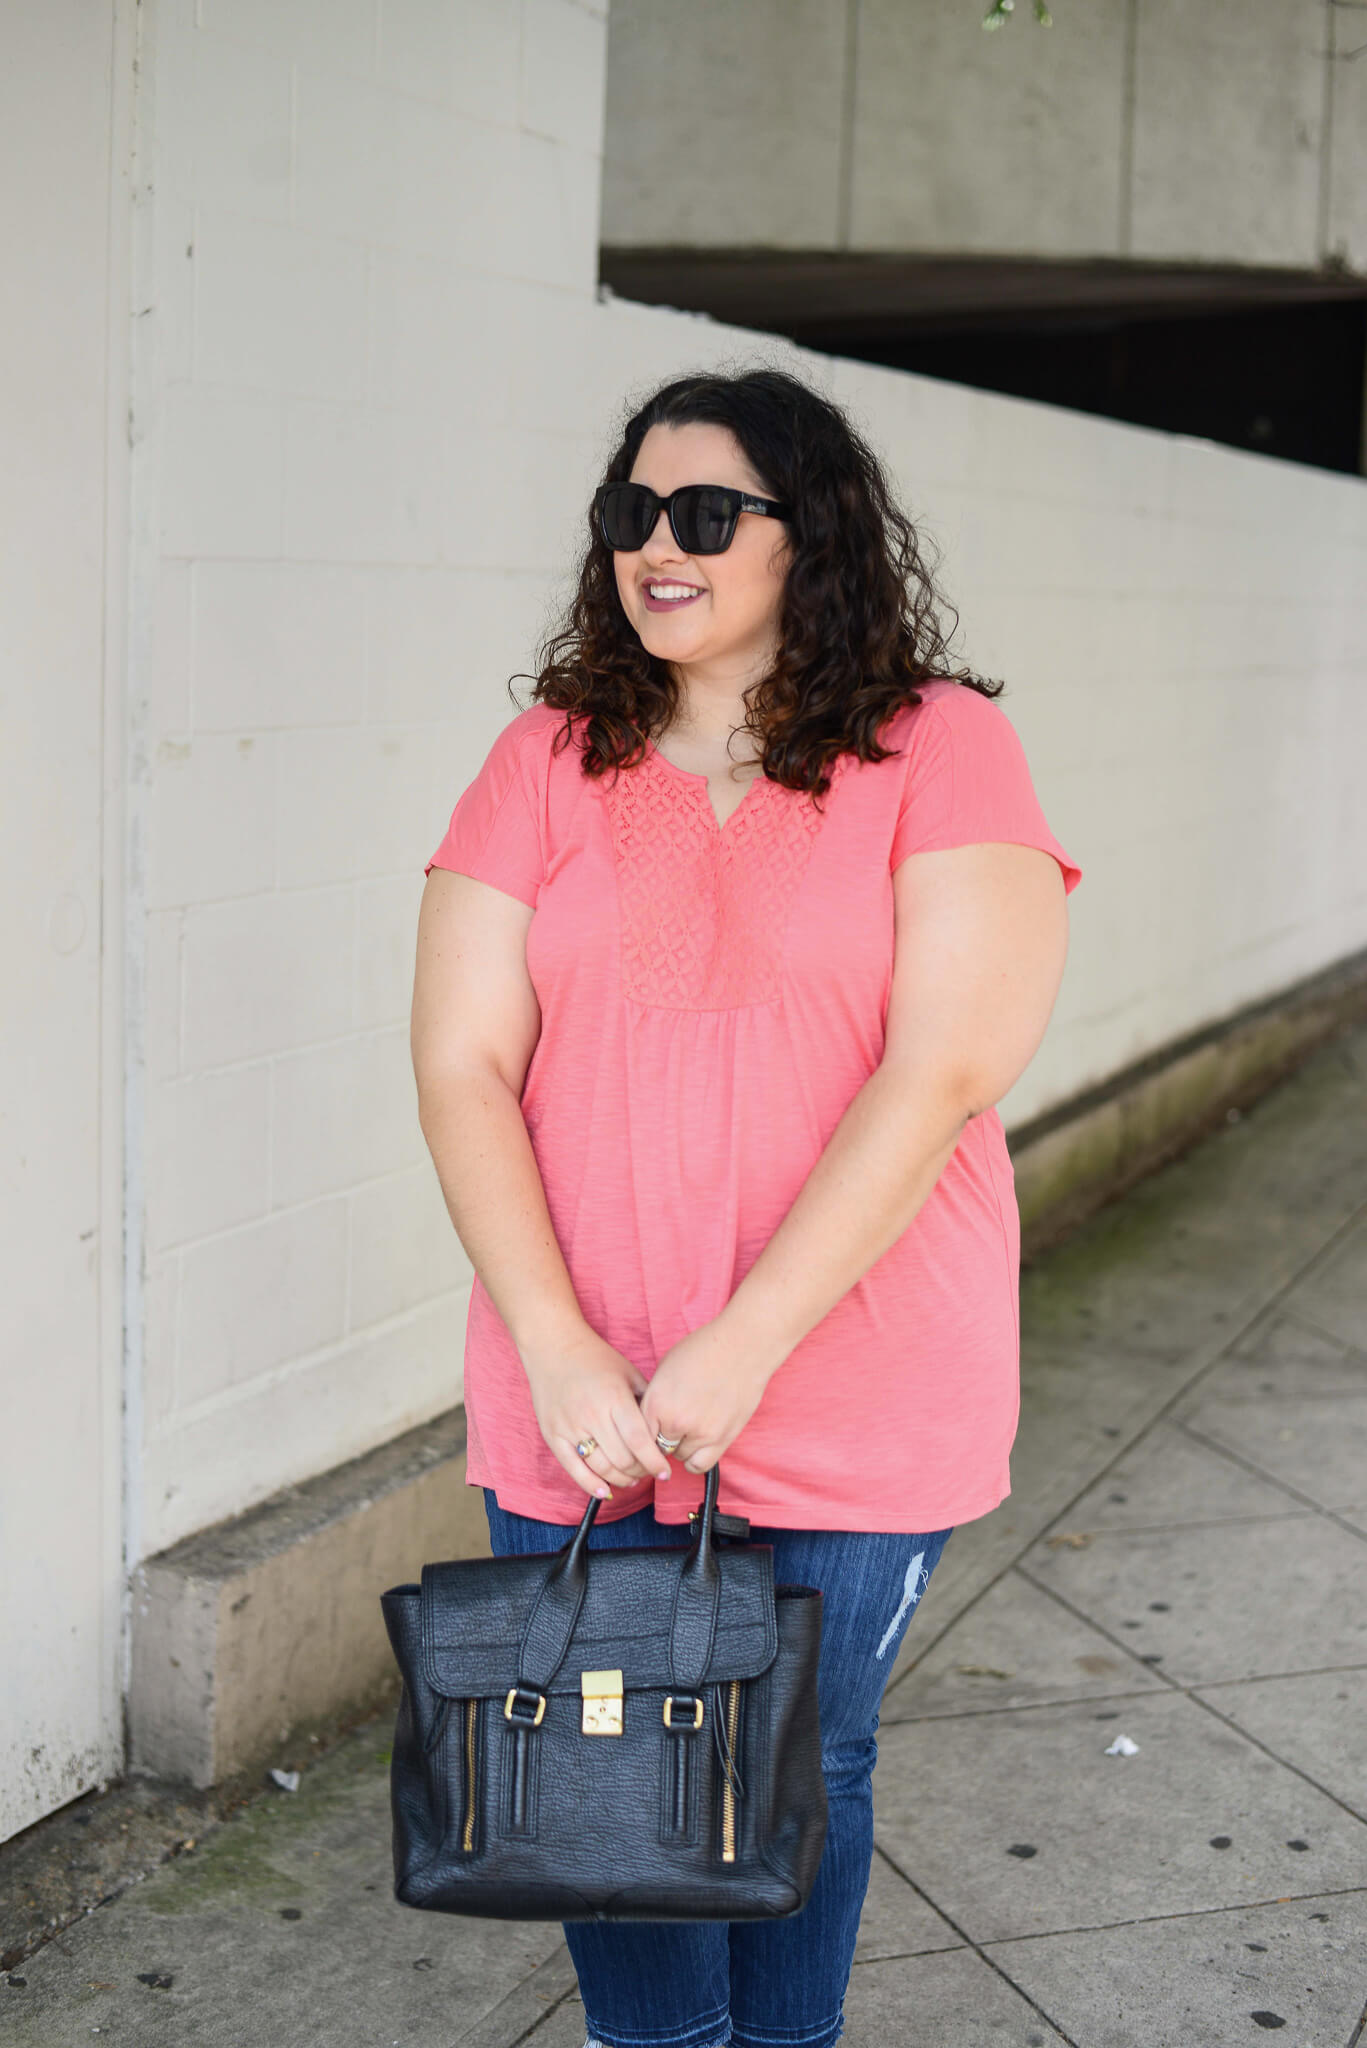 Exploring my own city is a lot of fun and doing so in bright colors is even better. This cotton short sleeve top from Just My Size is perfect for the Houston summers